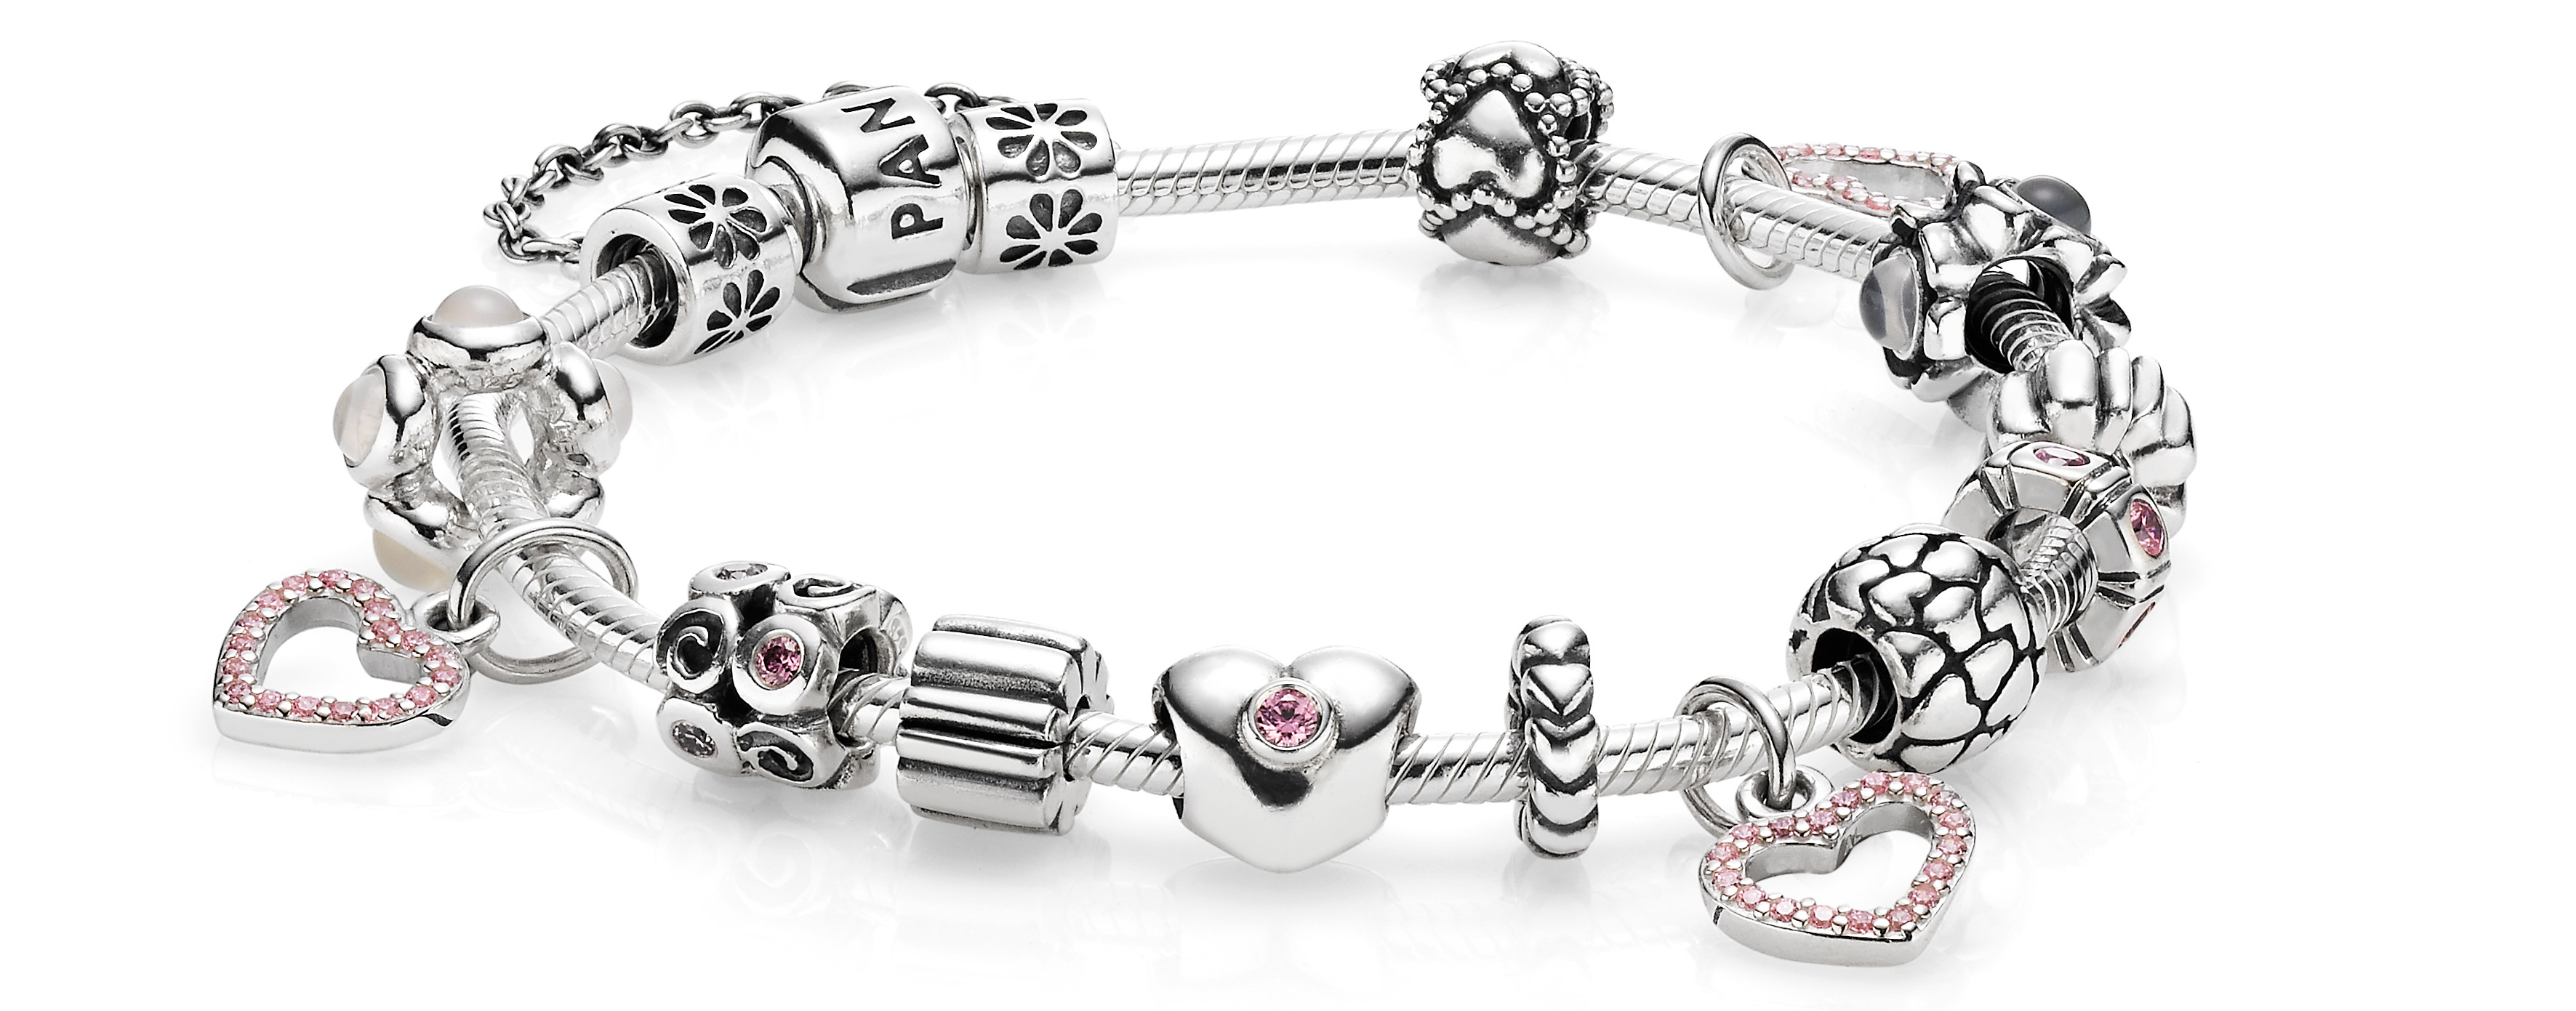 silver store bracelet hearts sale fits of pandora product no charms style charm ale jewelry